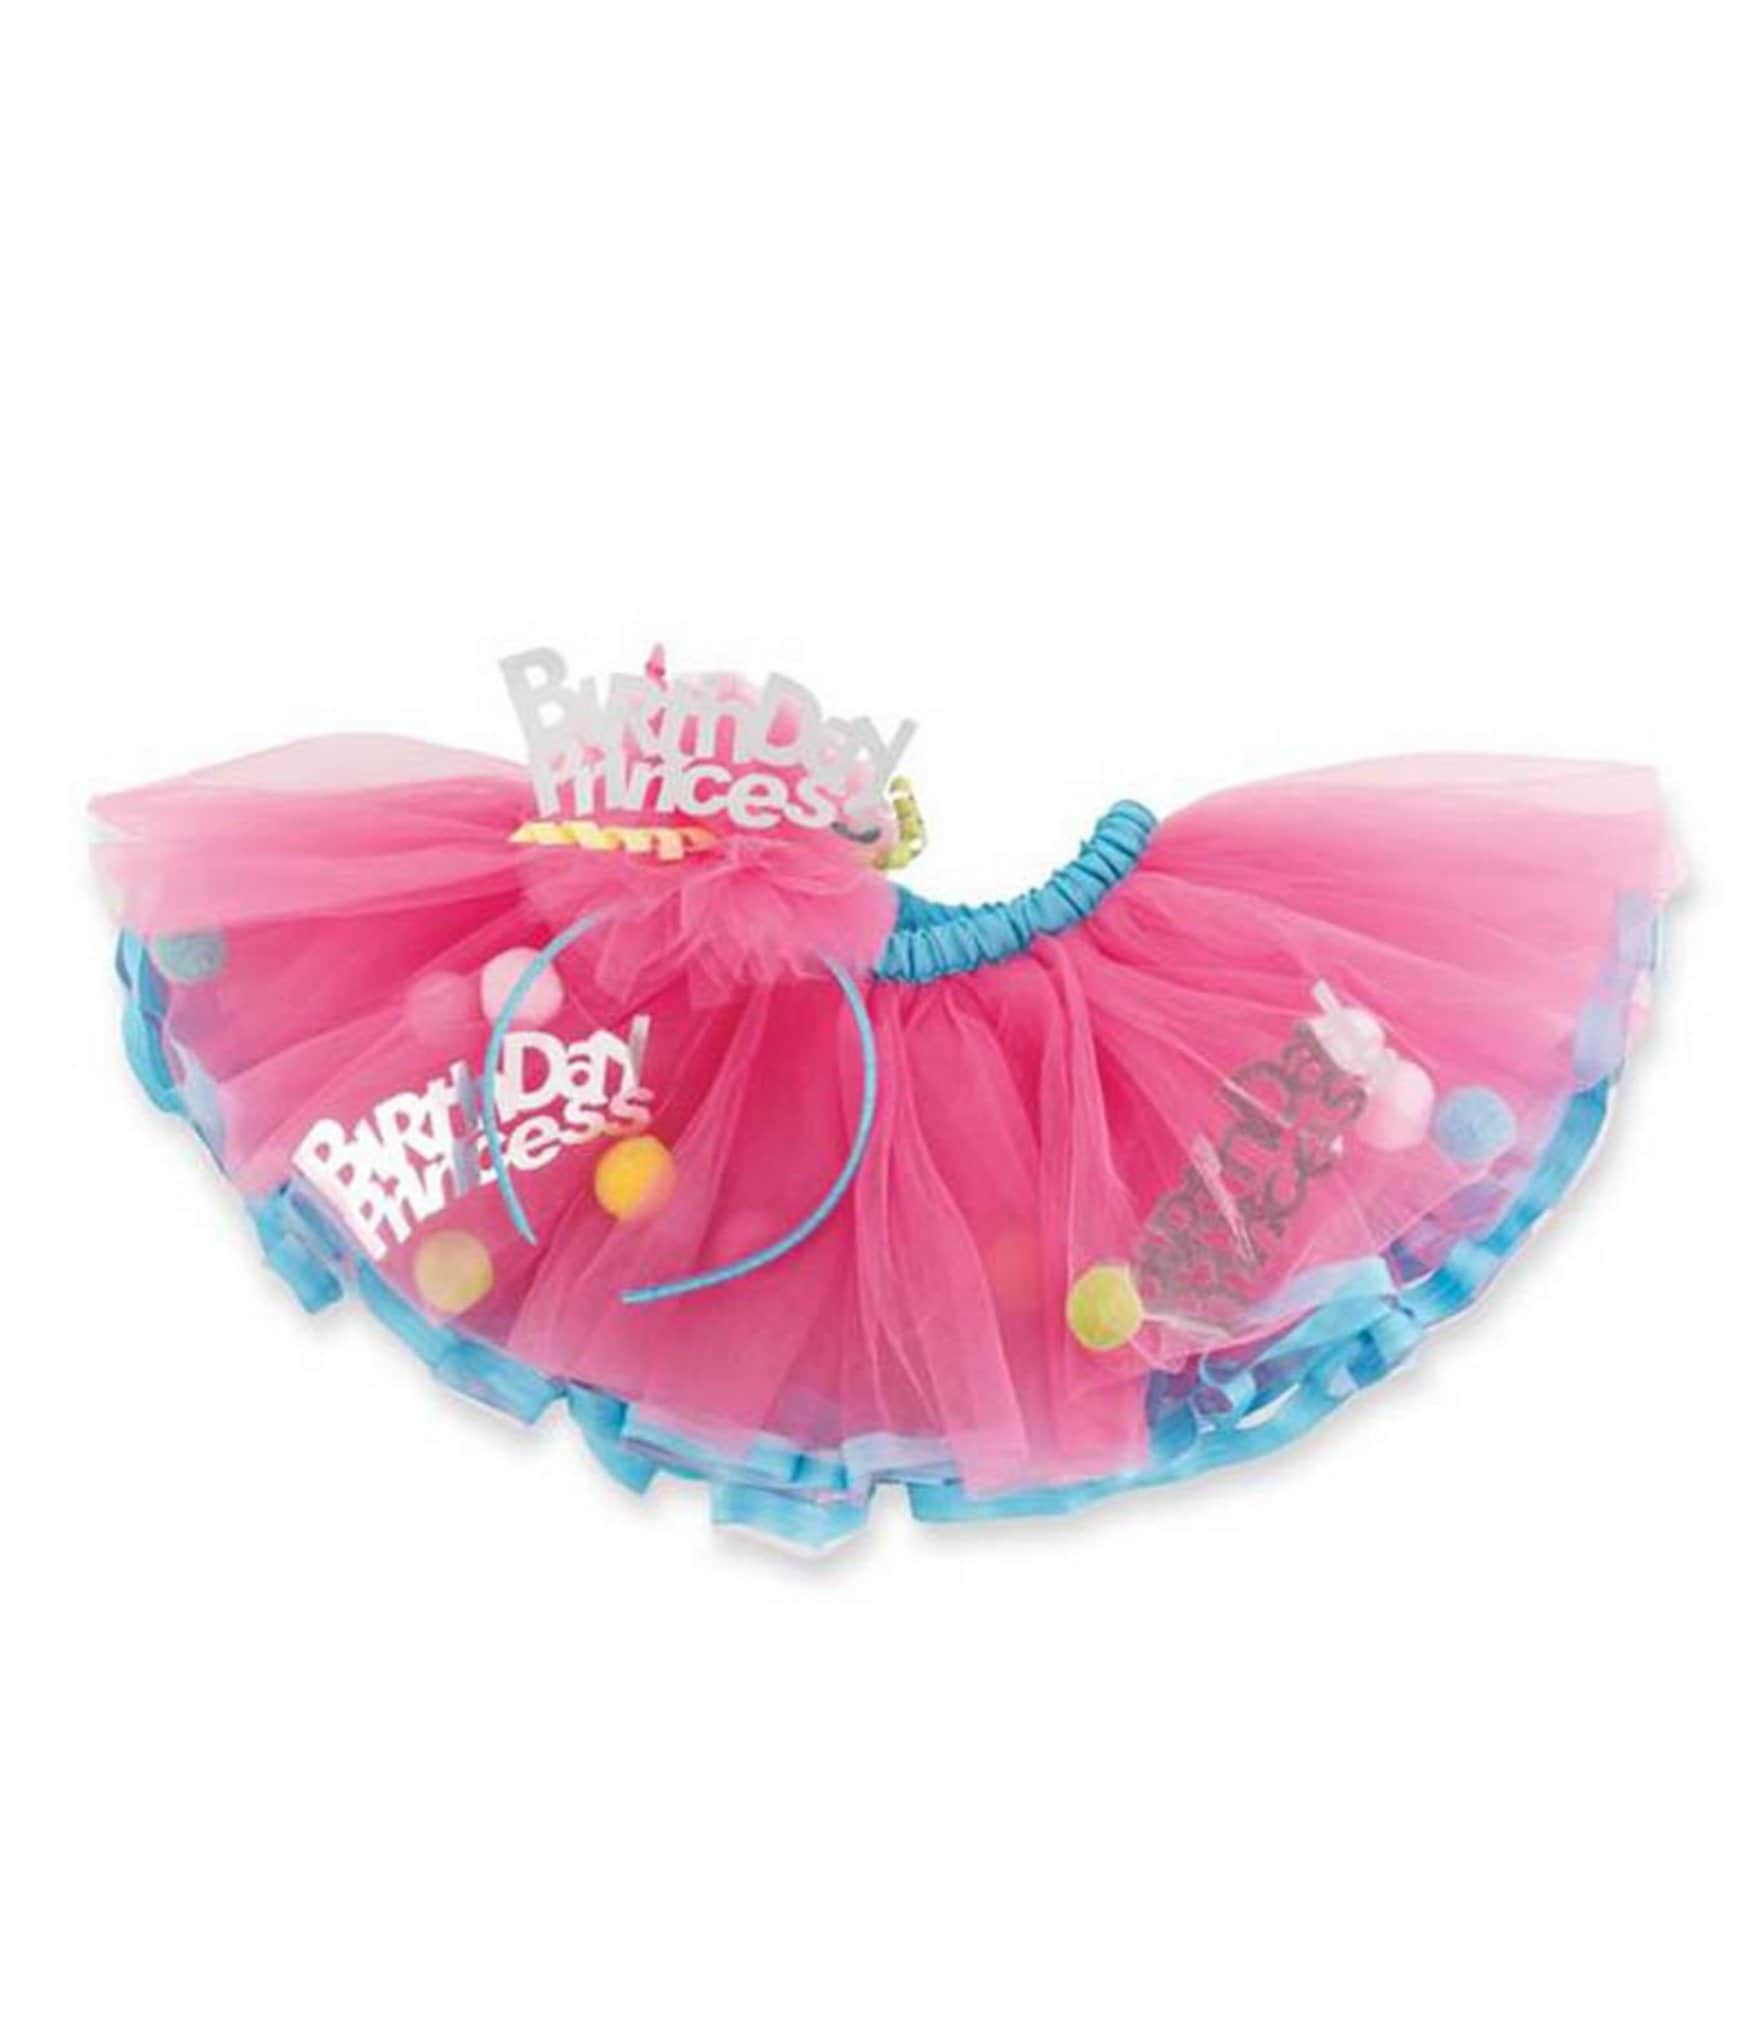 Mud pie ballerina piggy bank mud pie - Mud Pie Ballerina Piggy Bank Mud Pie 39